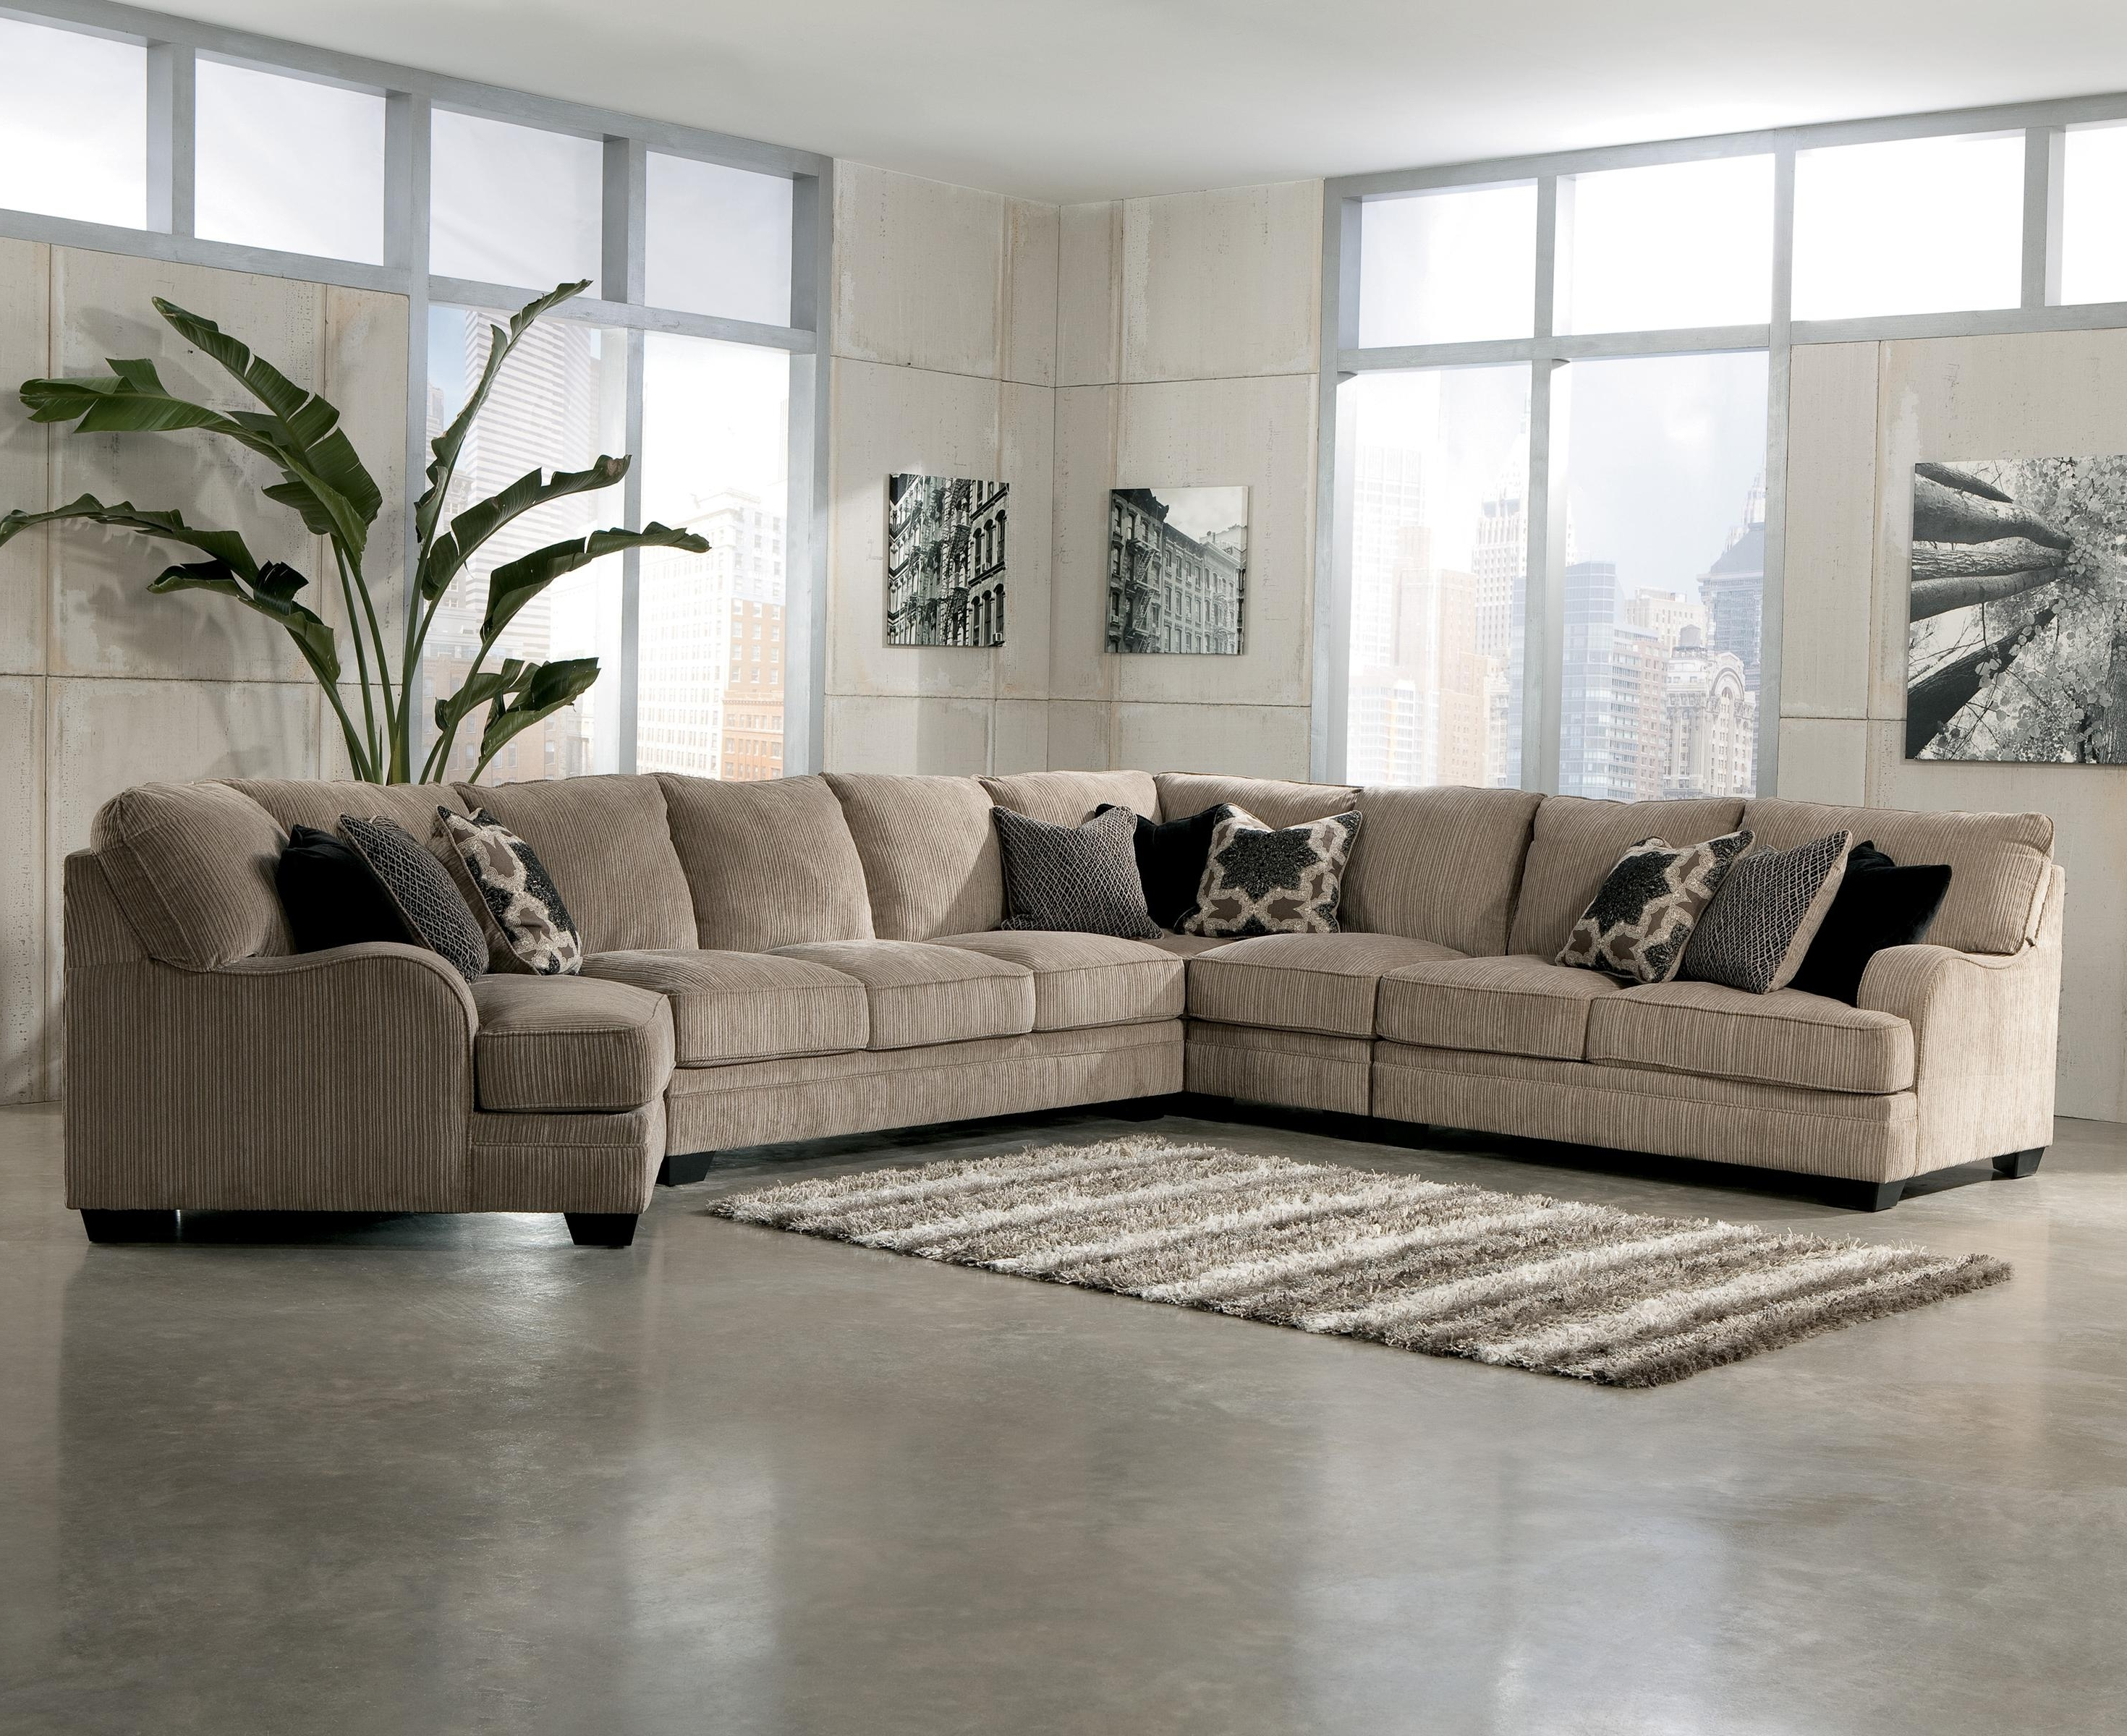 Signature Designashley Katisha – Platinum 5 Piece Sectional In Widely Used Sectional Sofas In Greenville Sc (View 8 of 15)